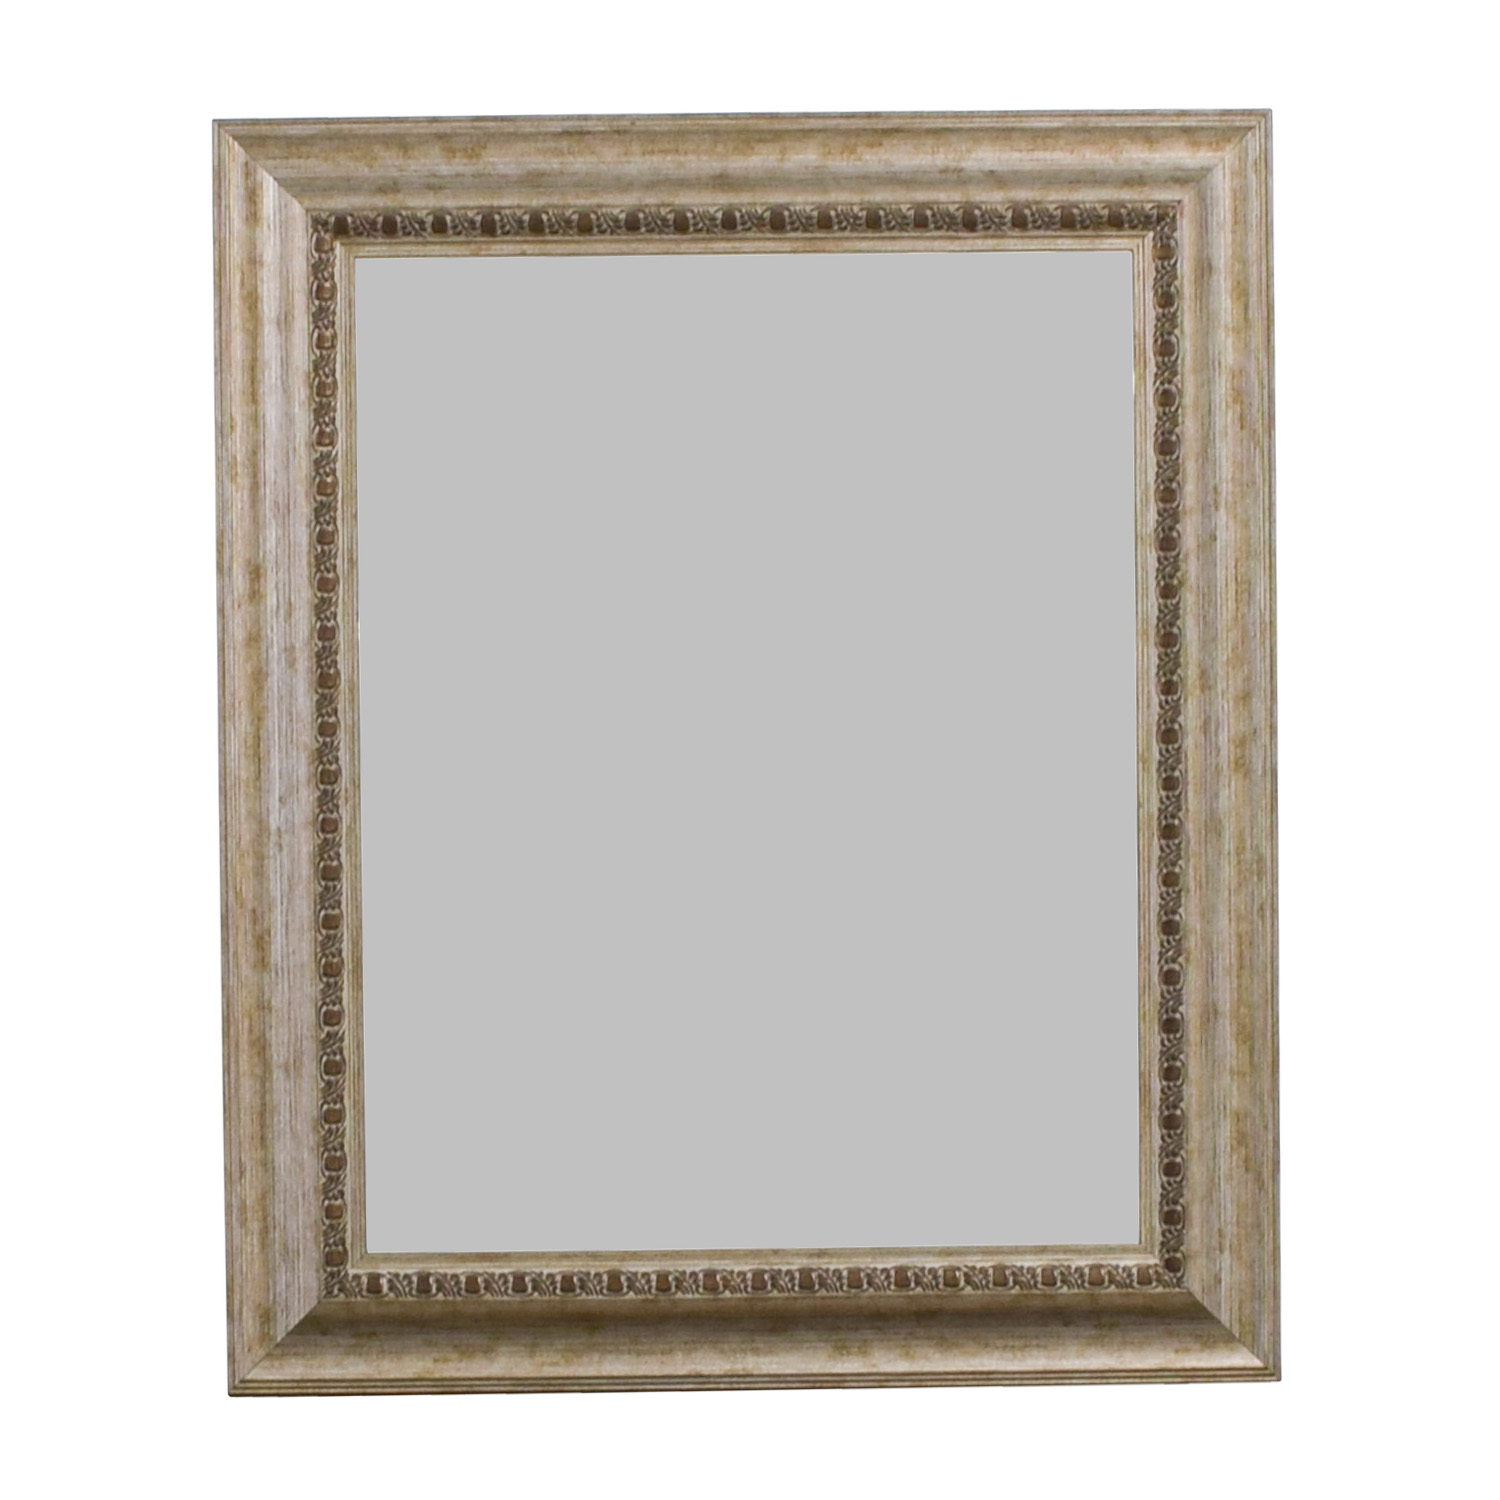 Brown and Silver Framed Wall Mirror